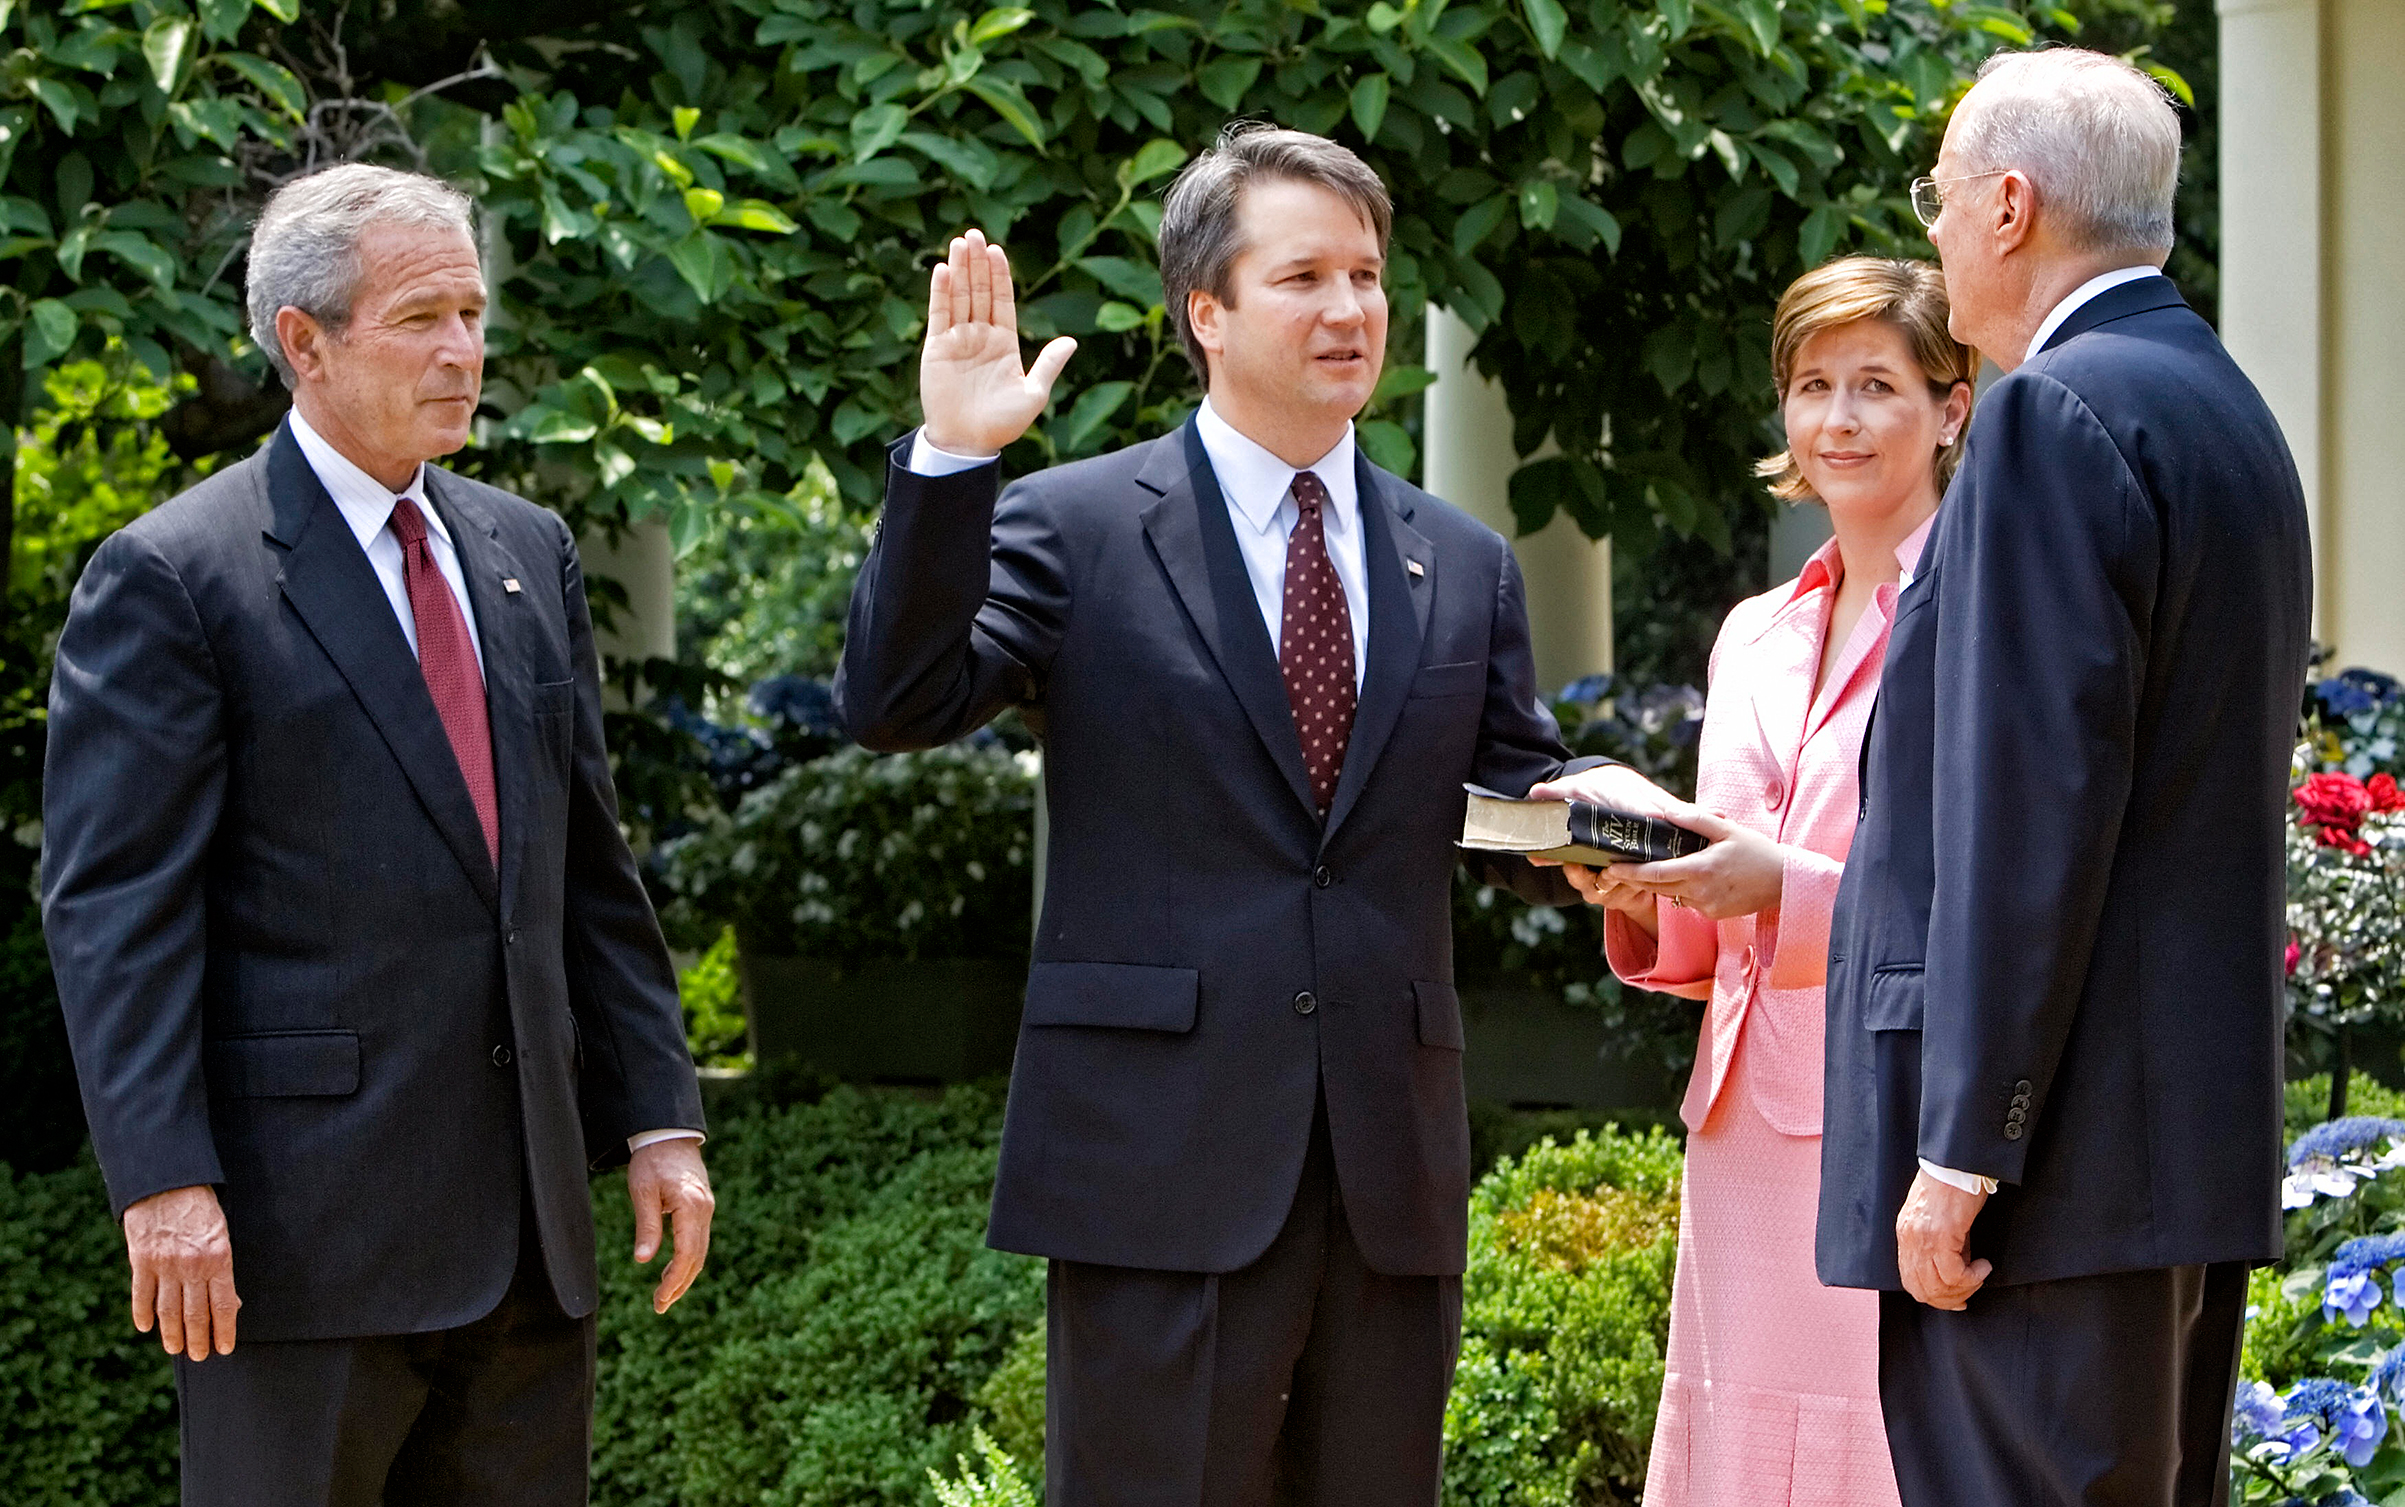 Kavanaugh is sworn in by Justice Kennedy in 2006 after being nominated by President George W. Bush as a judge on the U.S. Court of Appeals for D.C.